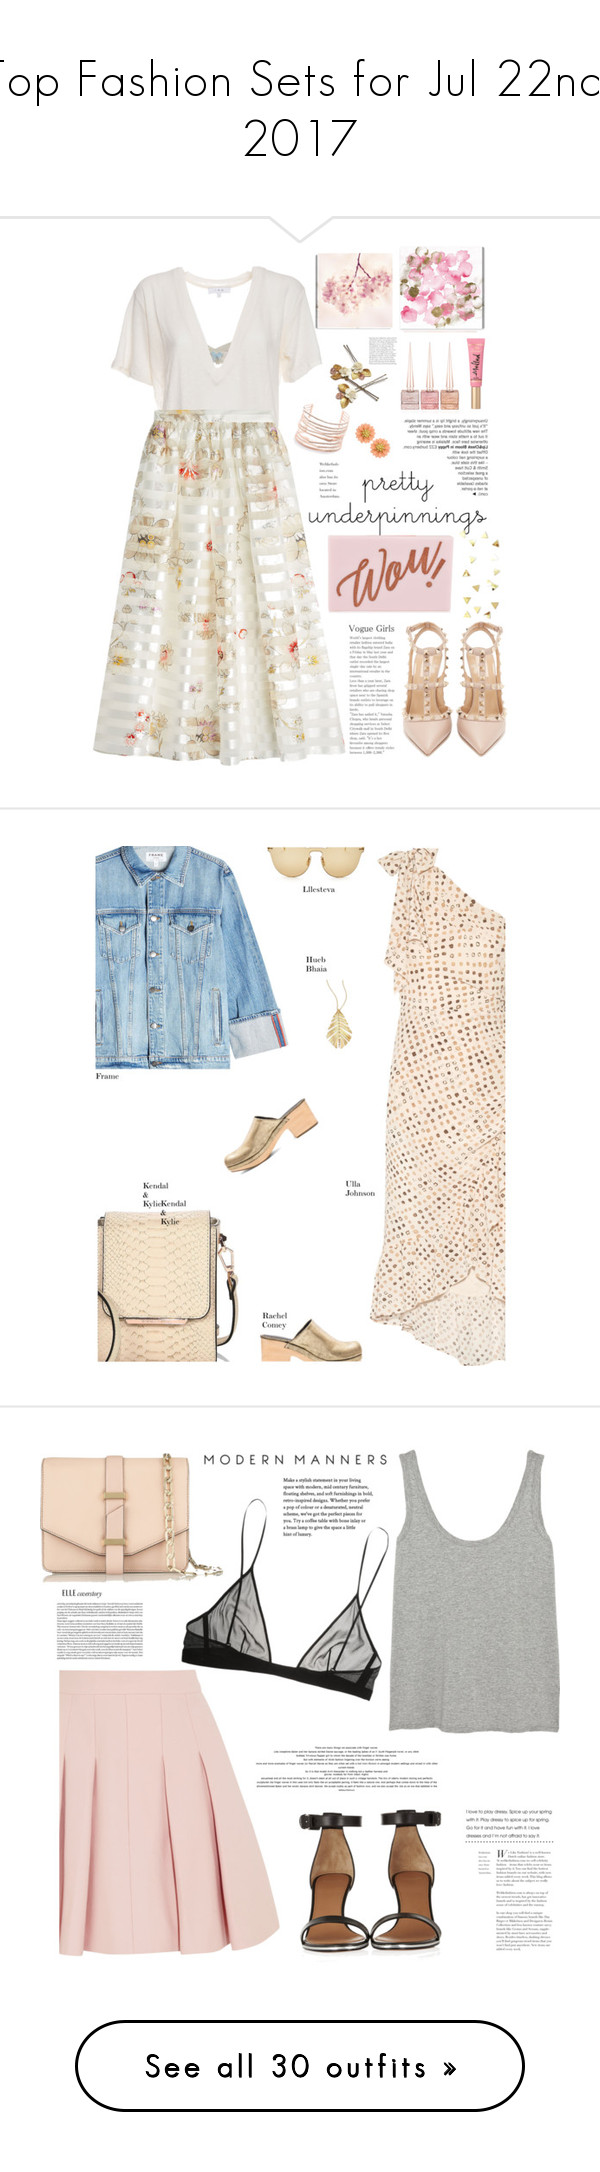 """""""Top Fashion Sets for Jul 22nd, 2017"""" by polyvore ❤ liked on Polyvore featuring Agent Provocateur, IRO, Oliver Gal Artist Co., Fendi, Valentino, Ted Baker, Christian Louboutin, Too Faced Cosmetics, Alexis Bittar and Ulla Johnson"""